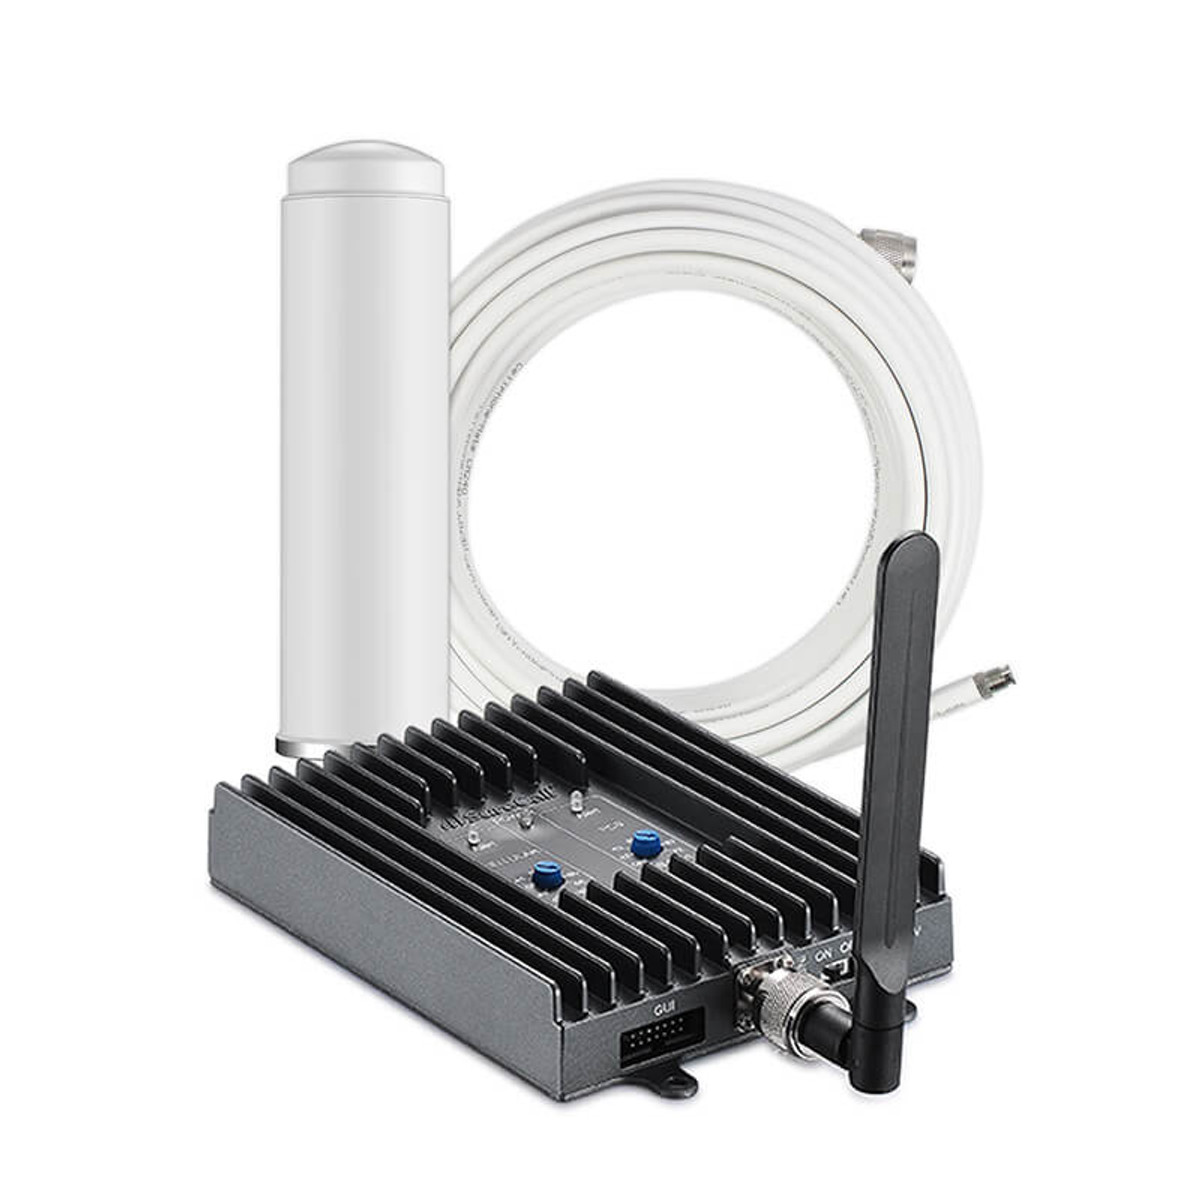 SureCall FlexPro 3G Signal Booster with Omni & Whip Antennas | Kit